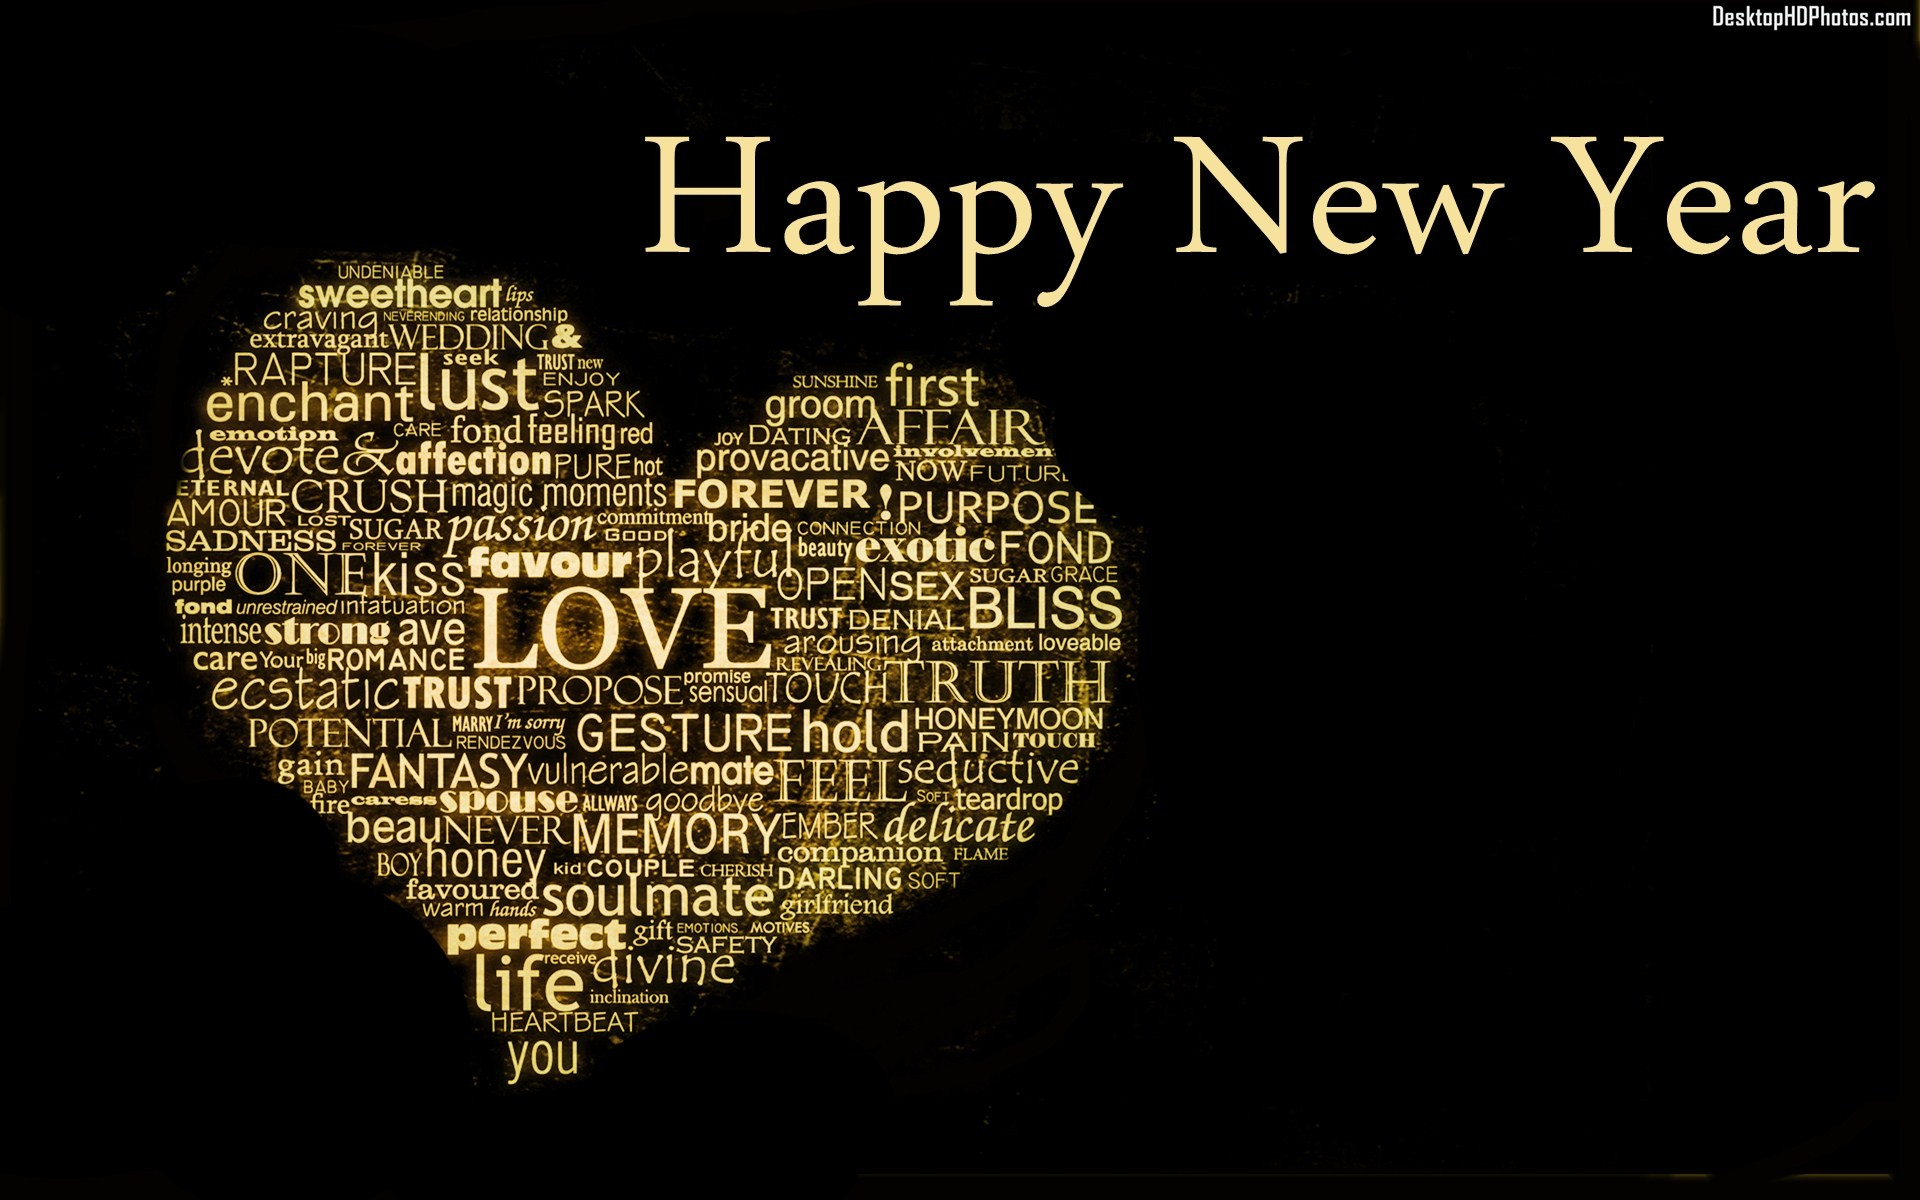 New Year Love Hd Wallpaper : New year 2016 HD wallpaper collections - HD wallpaper collections